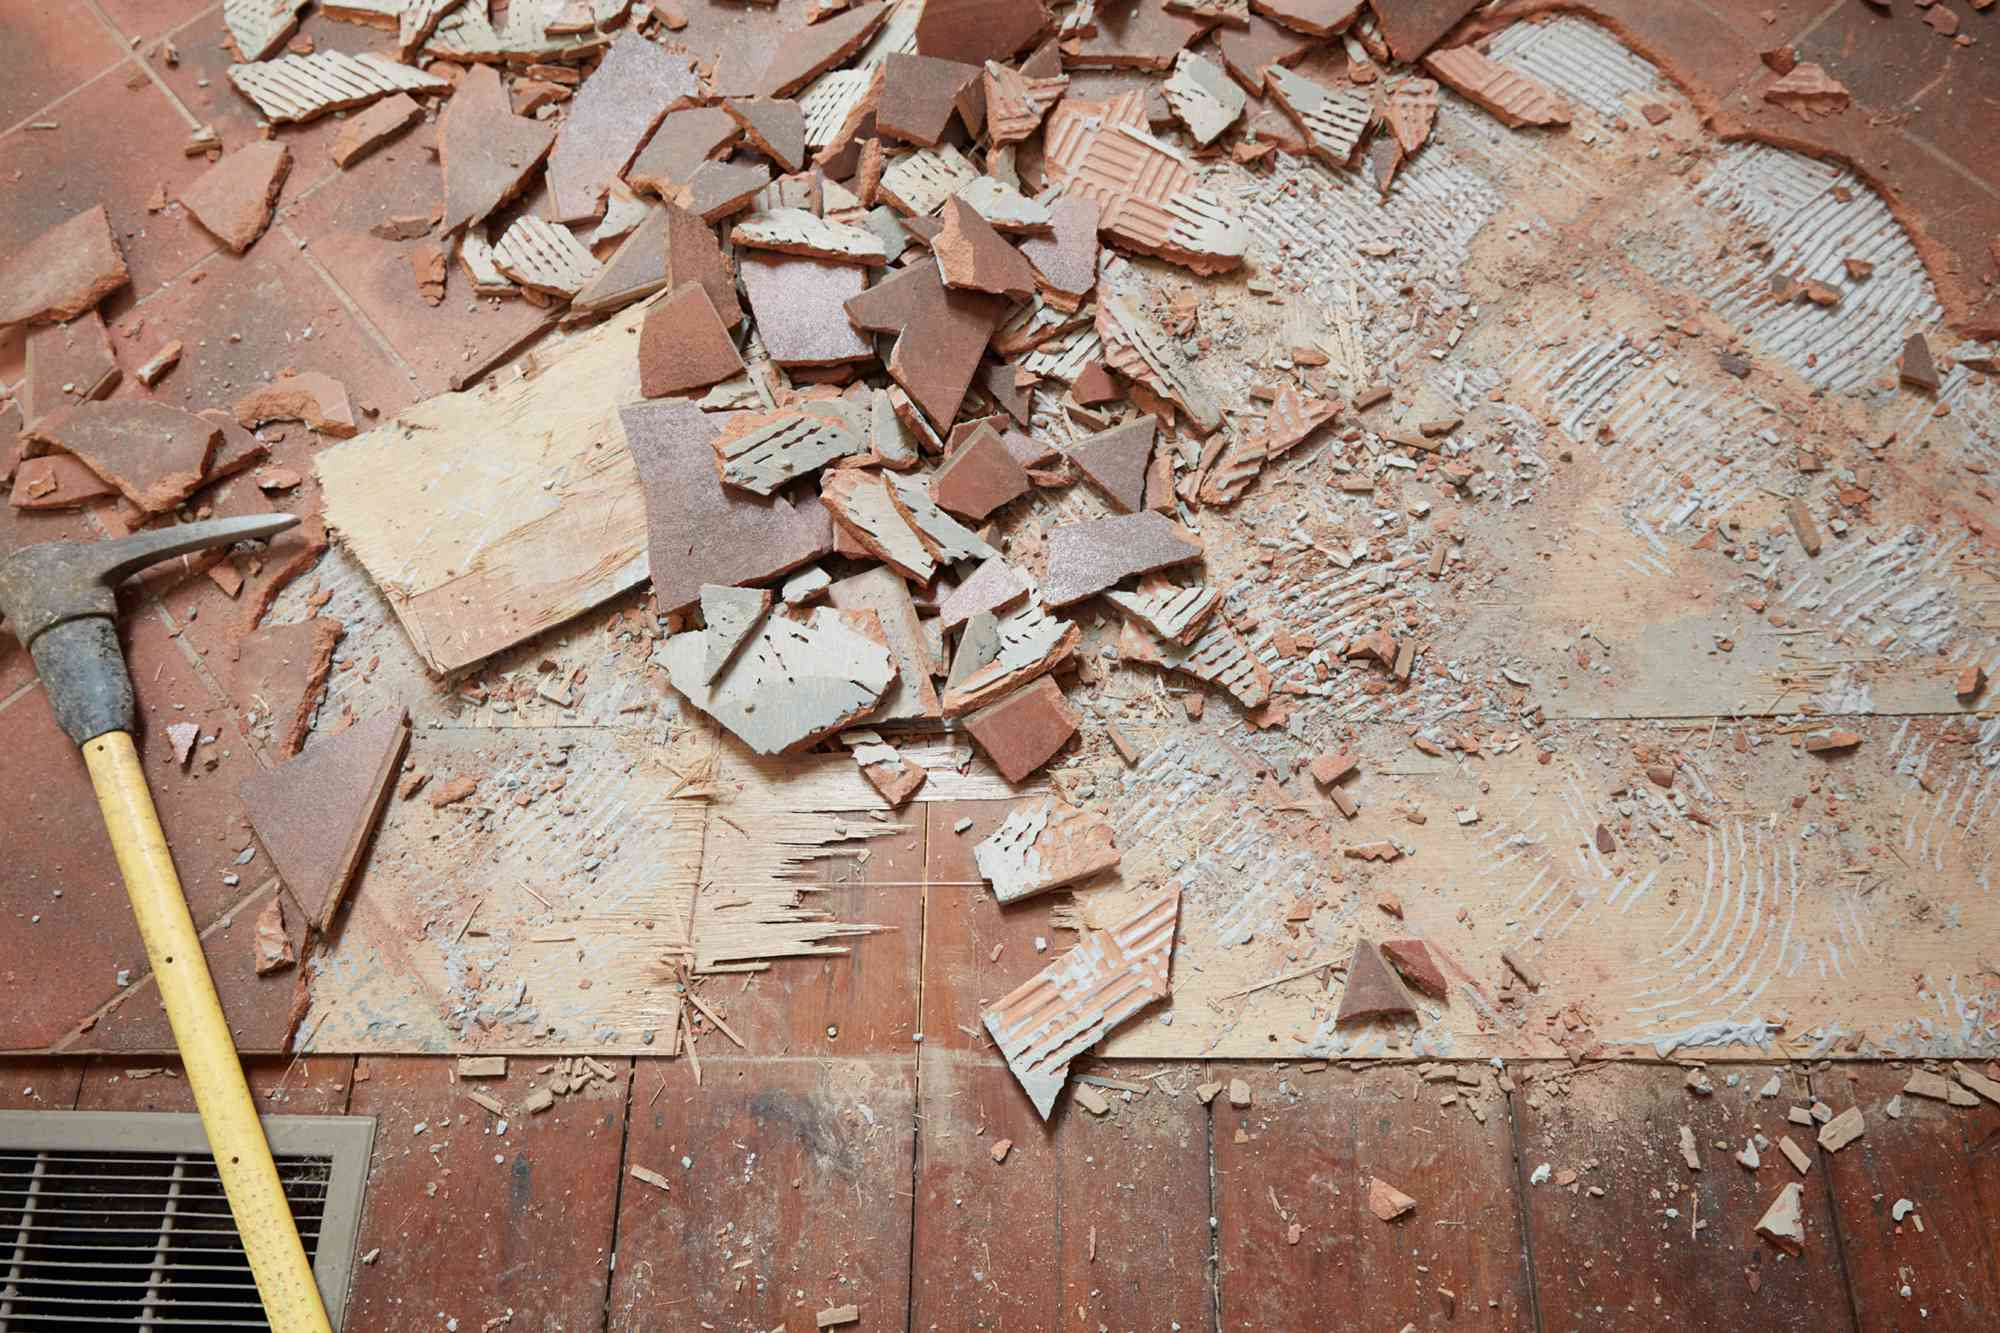 Floor edge with brown ceramic tile broken into smaller pieces with masonry chisel